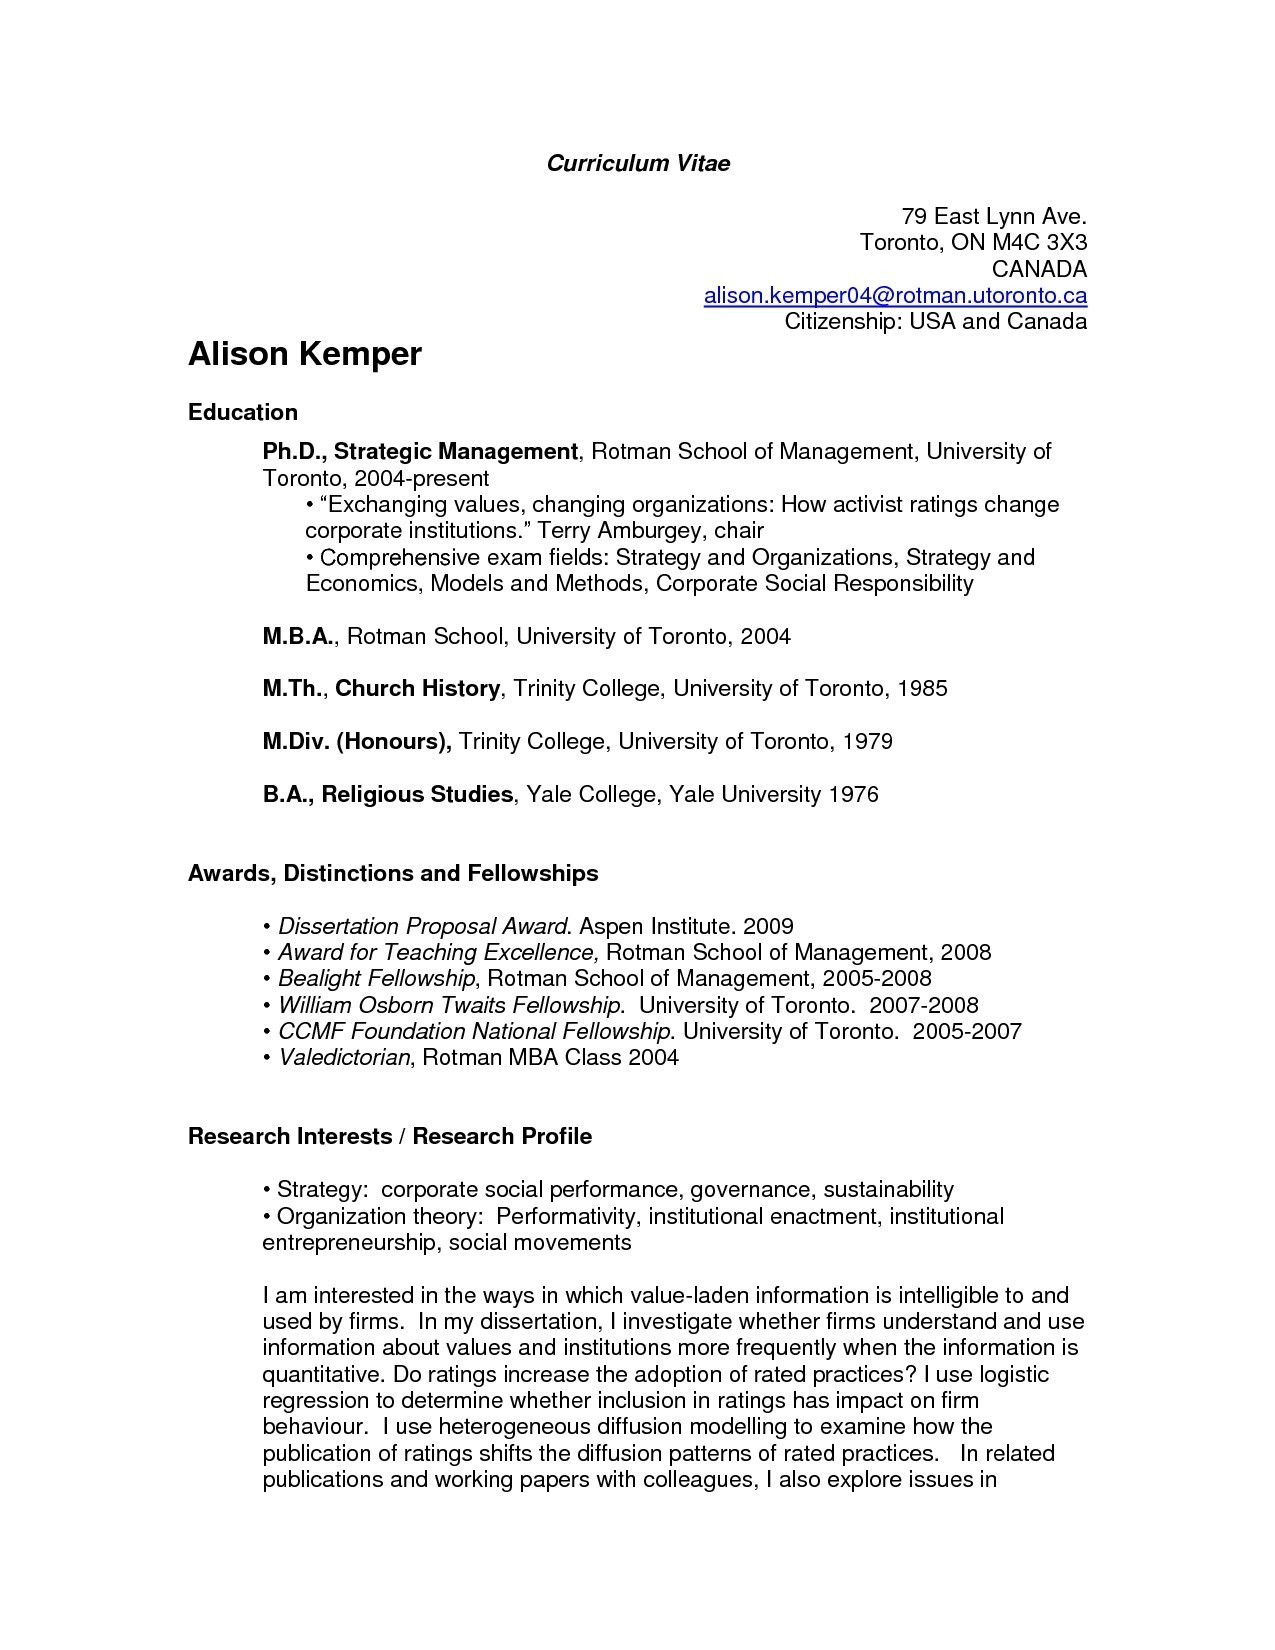 librarian resume template example-Librarian Resume Sample Best Librarian Curriculum Vitae Sample 4-b